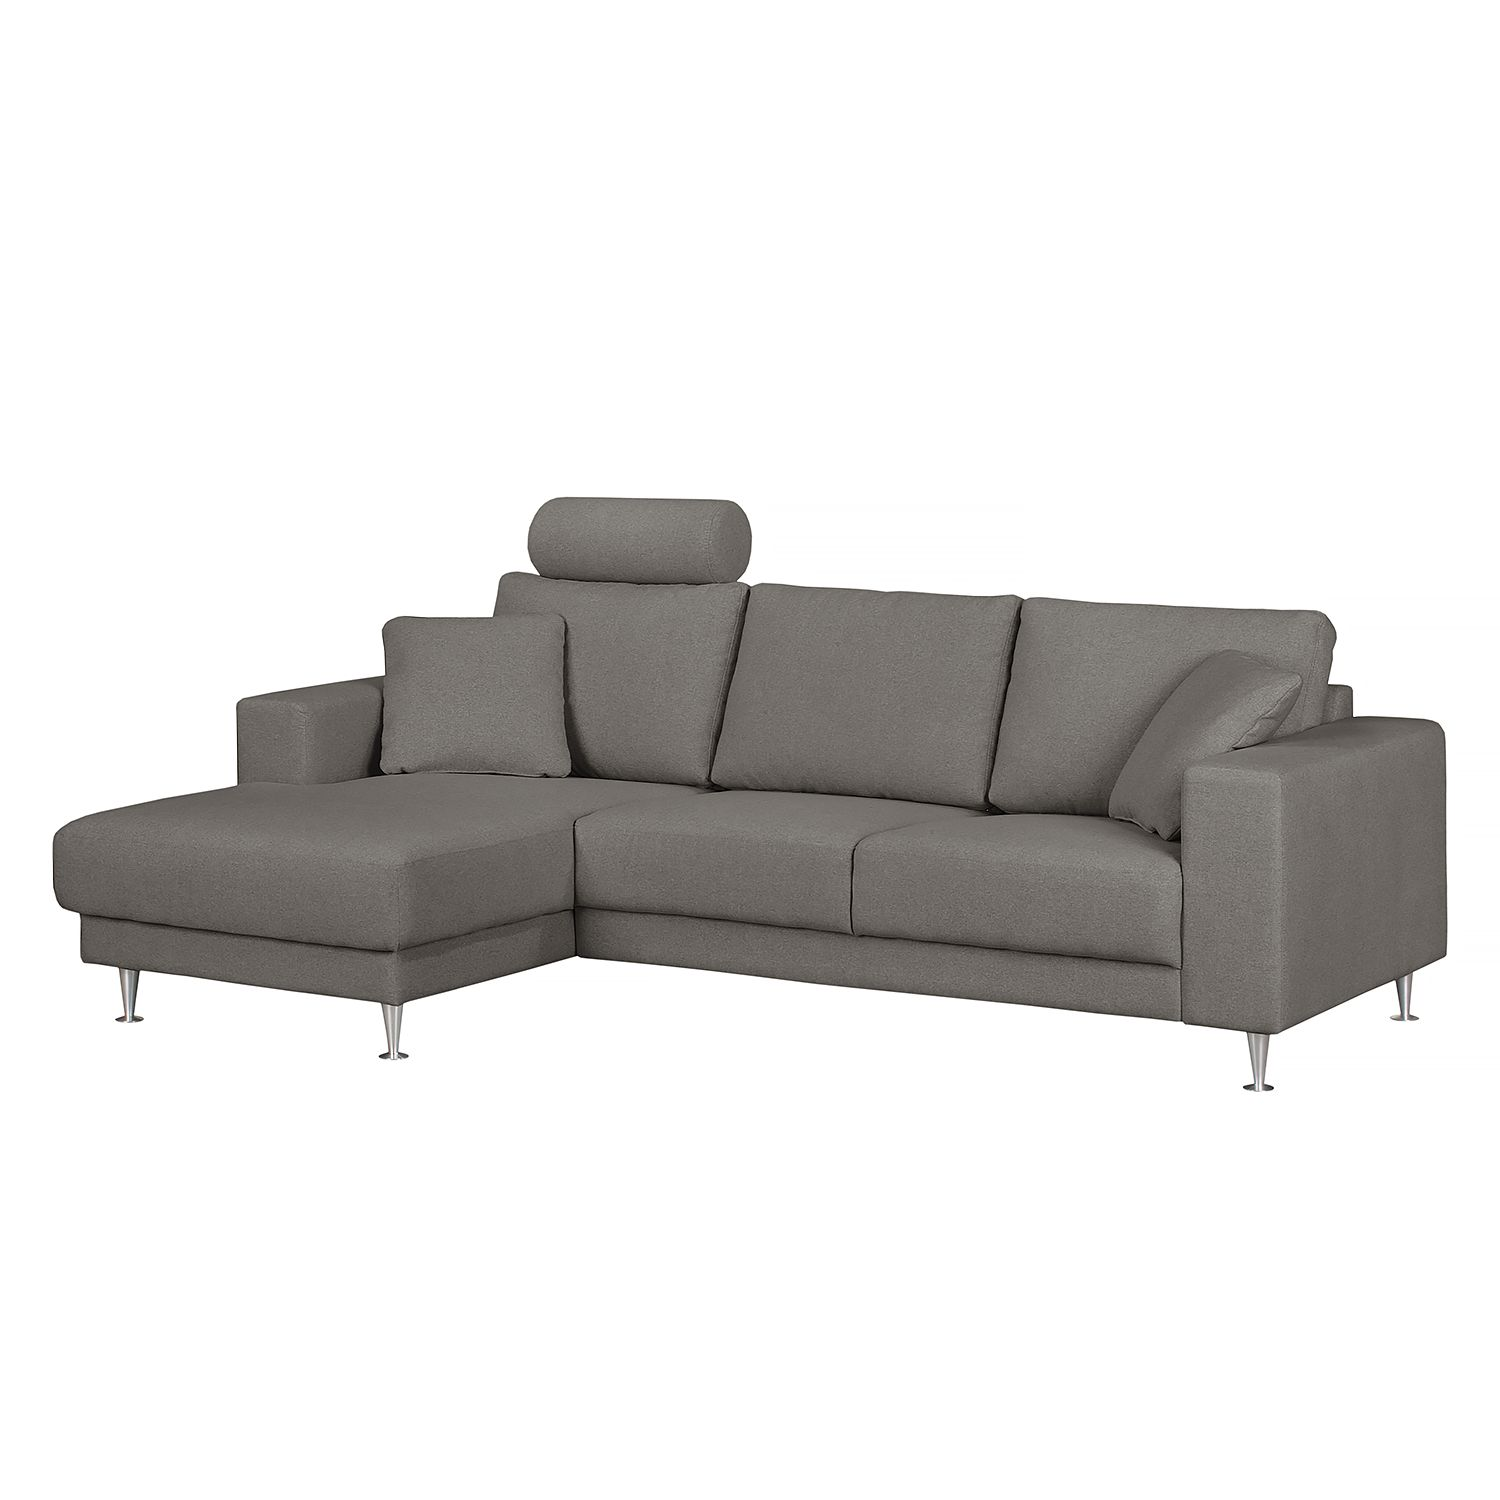 ecksofa dunkelgrau finest trendy melrose with ecksofa mit with ecksofa dunkelgrau cool ecksofa. Black Bedroom Furniture Sets. Home Design Ideas